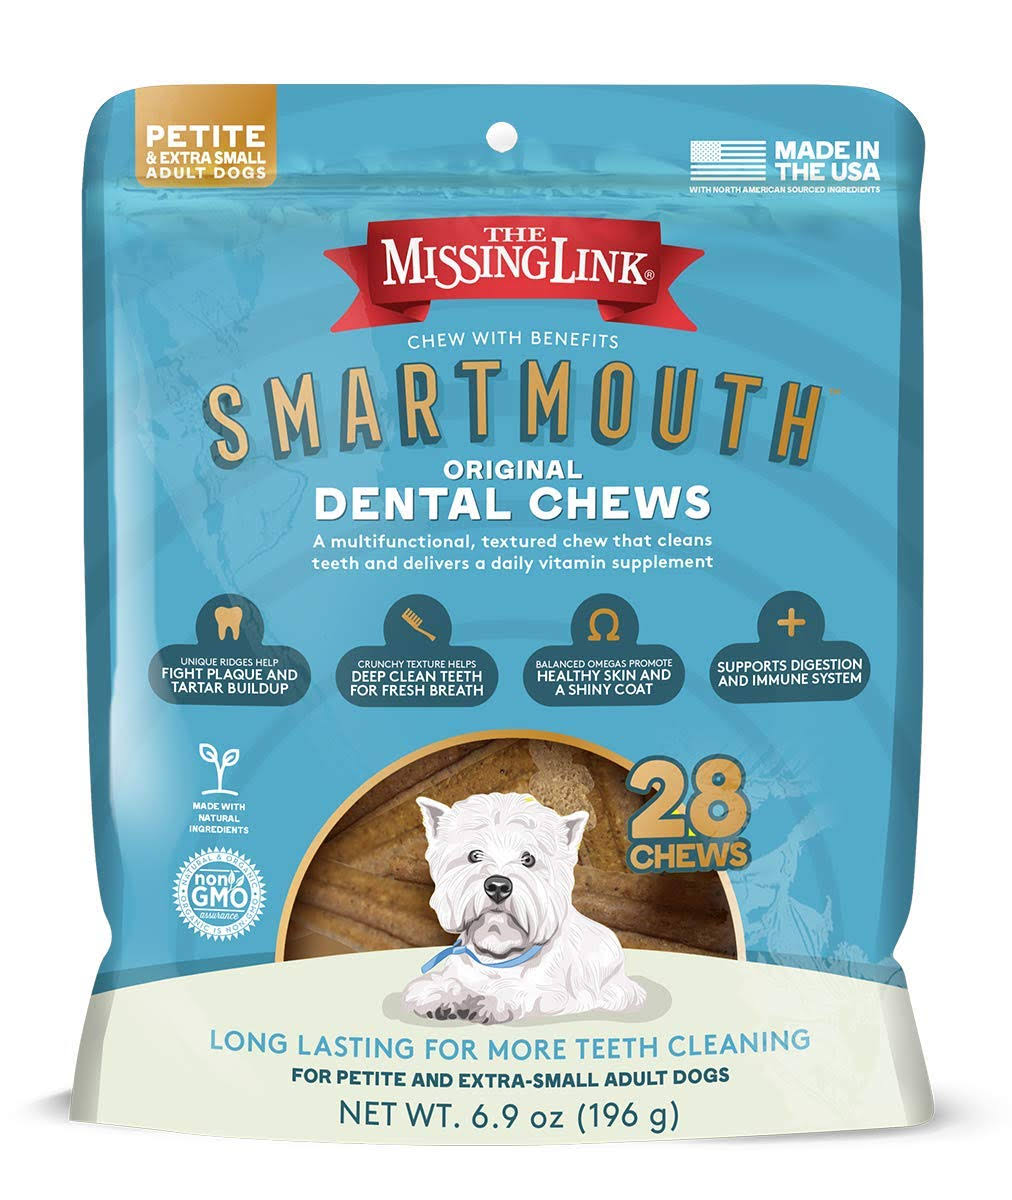 28 Counts Smartmouth Dental Chews for Petite /Extra Small Dogs